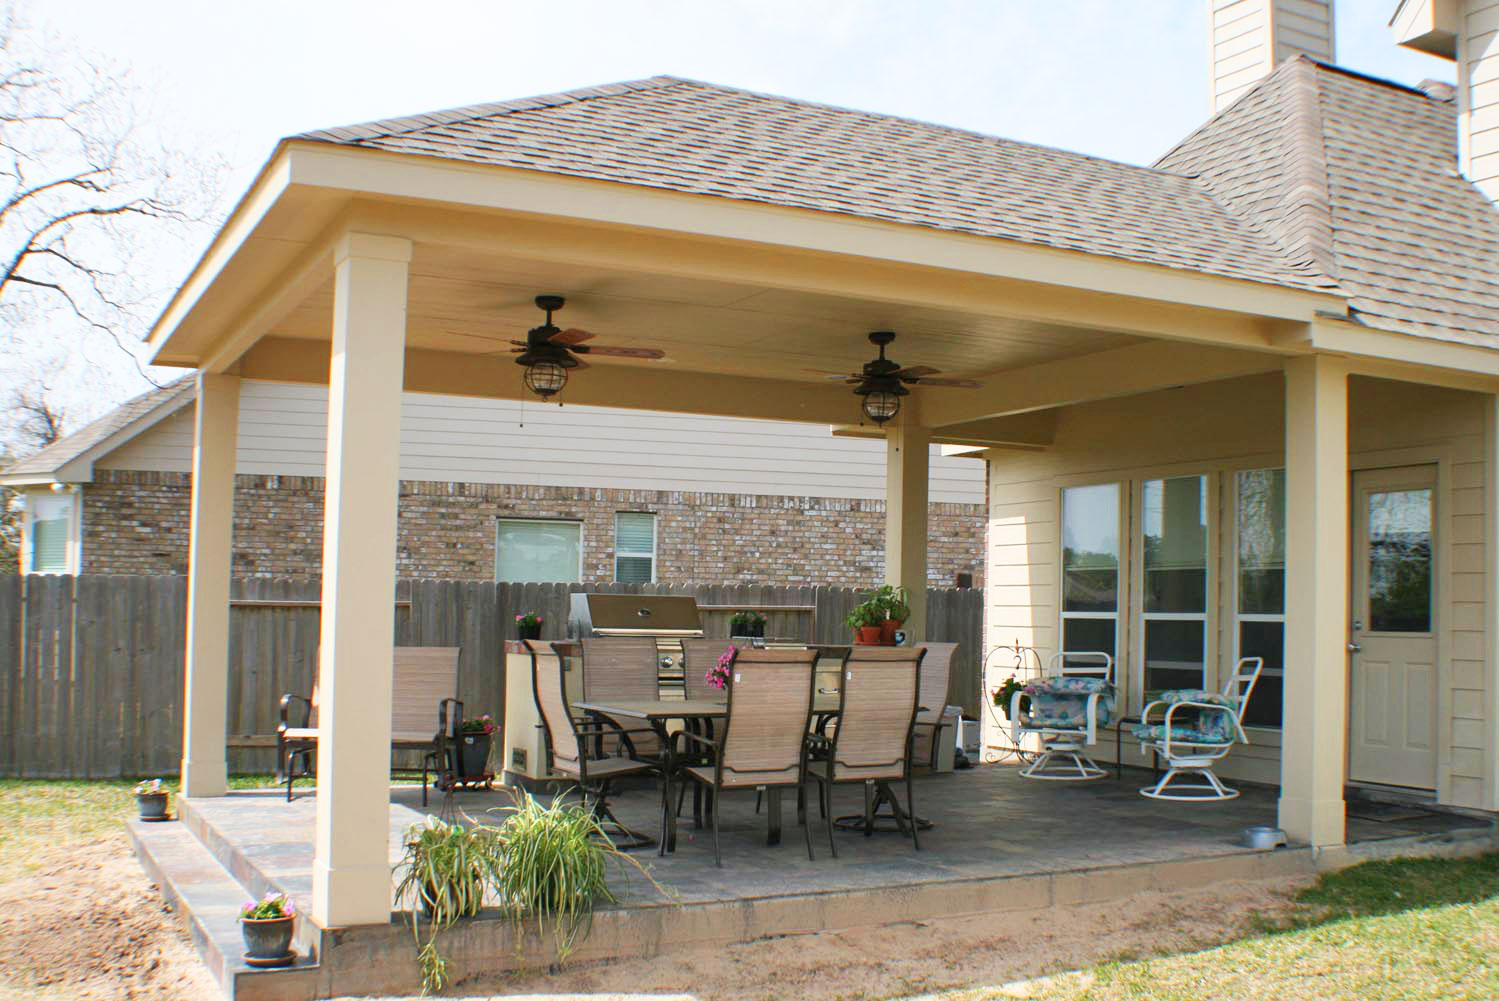 16 by 20 Patio Cover + Outdoor Kitchen - HHI Patio Covers on Patio Covers Ideas  id=45427